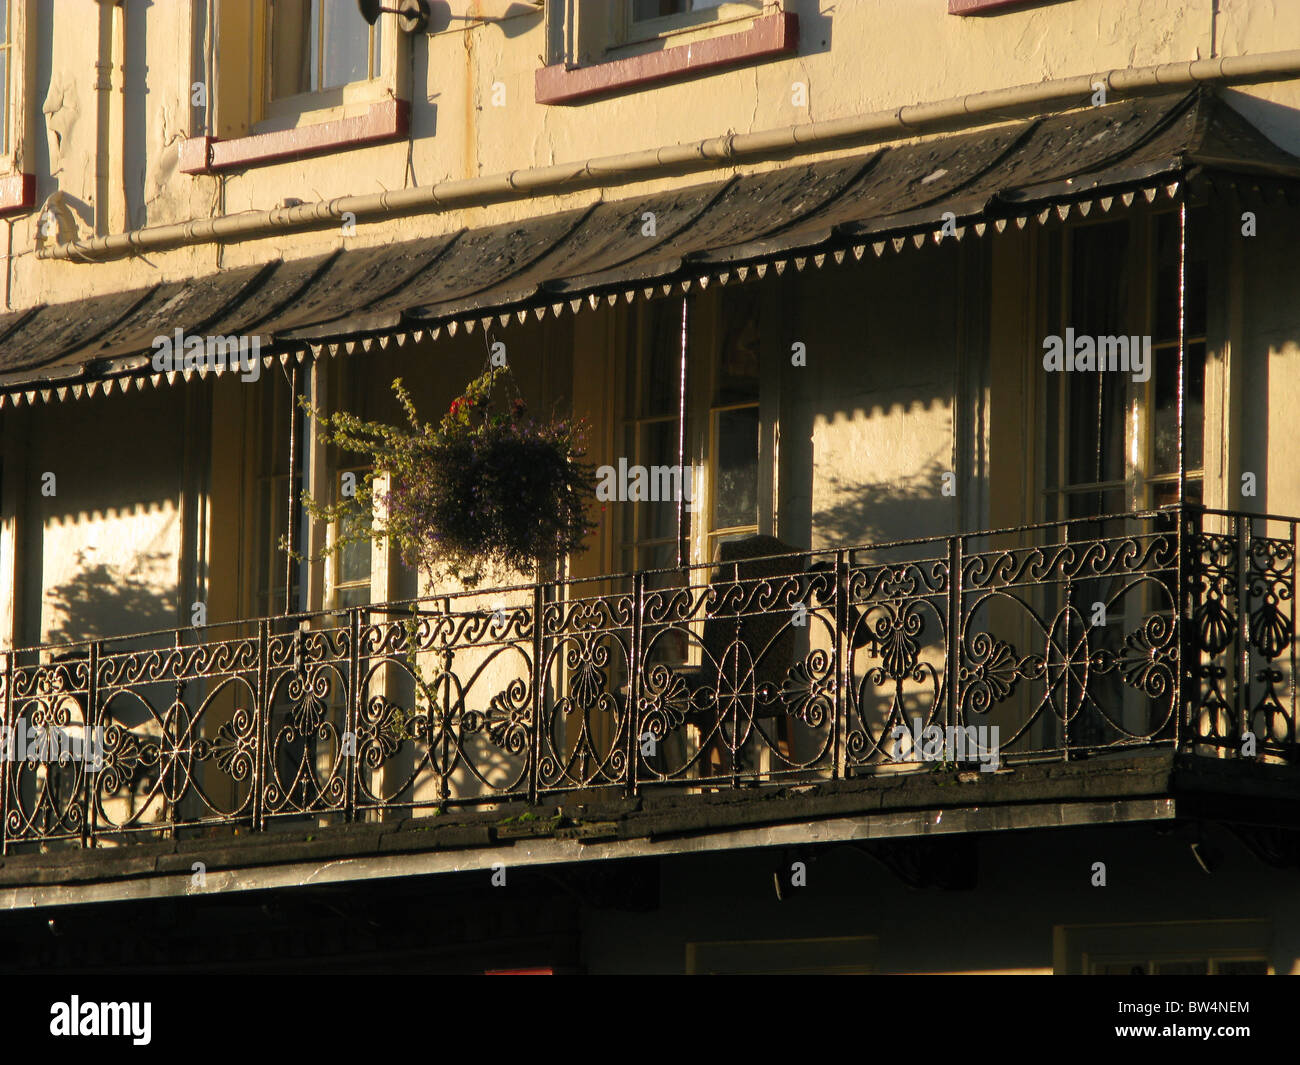 Faded grandeur of once luxury hotel in evening sunshine - Stock Image